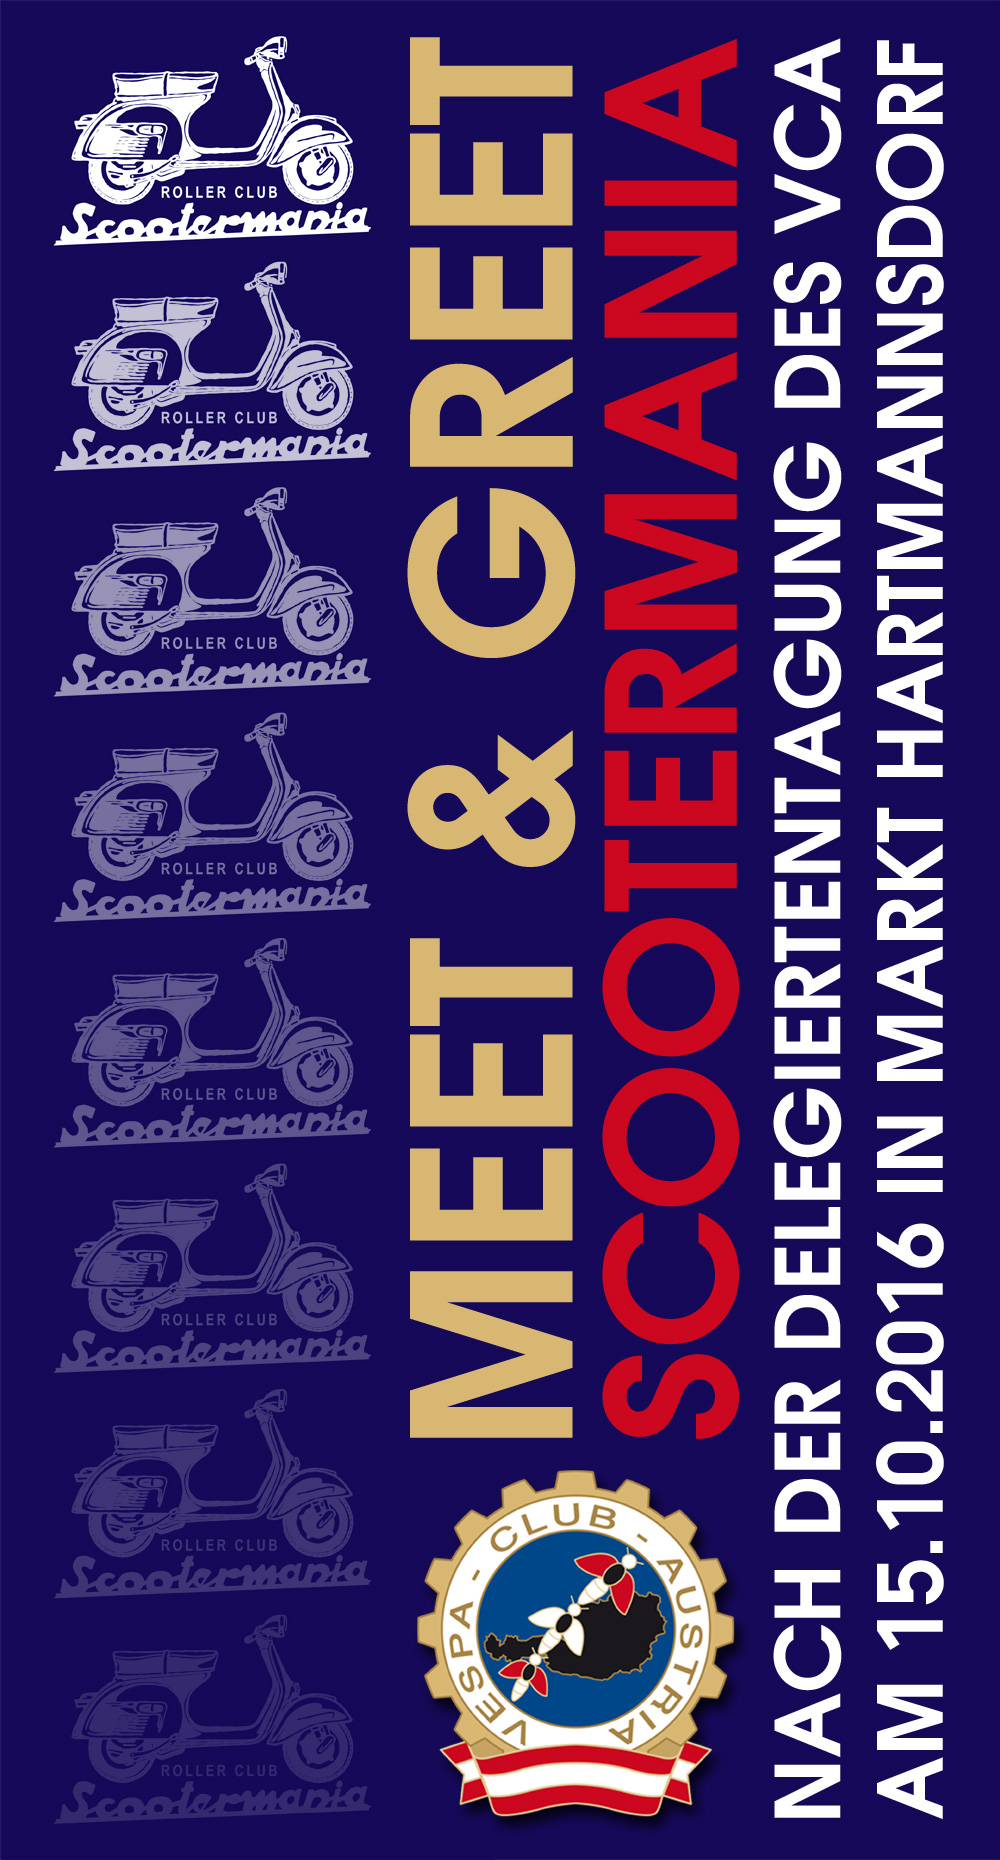 flyer-meet-greet-scootermania